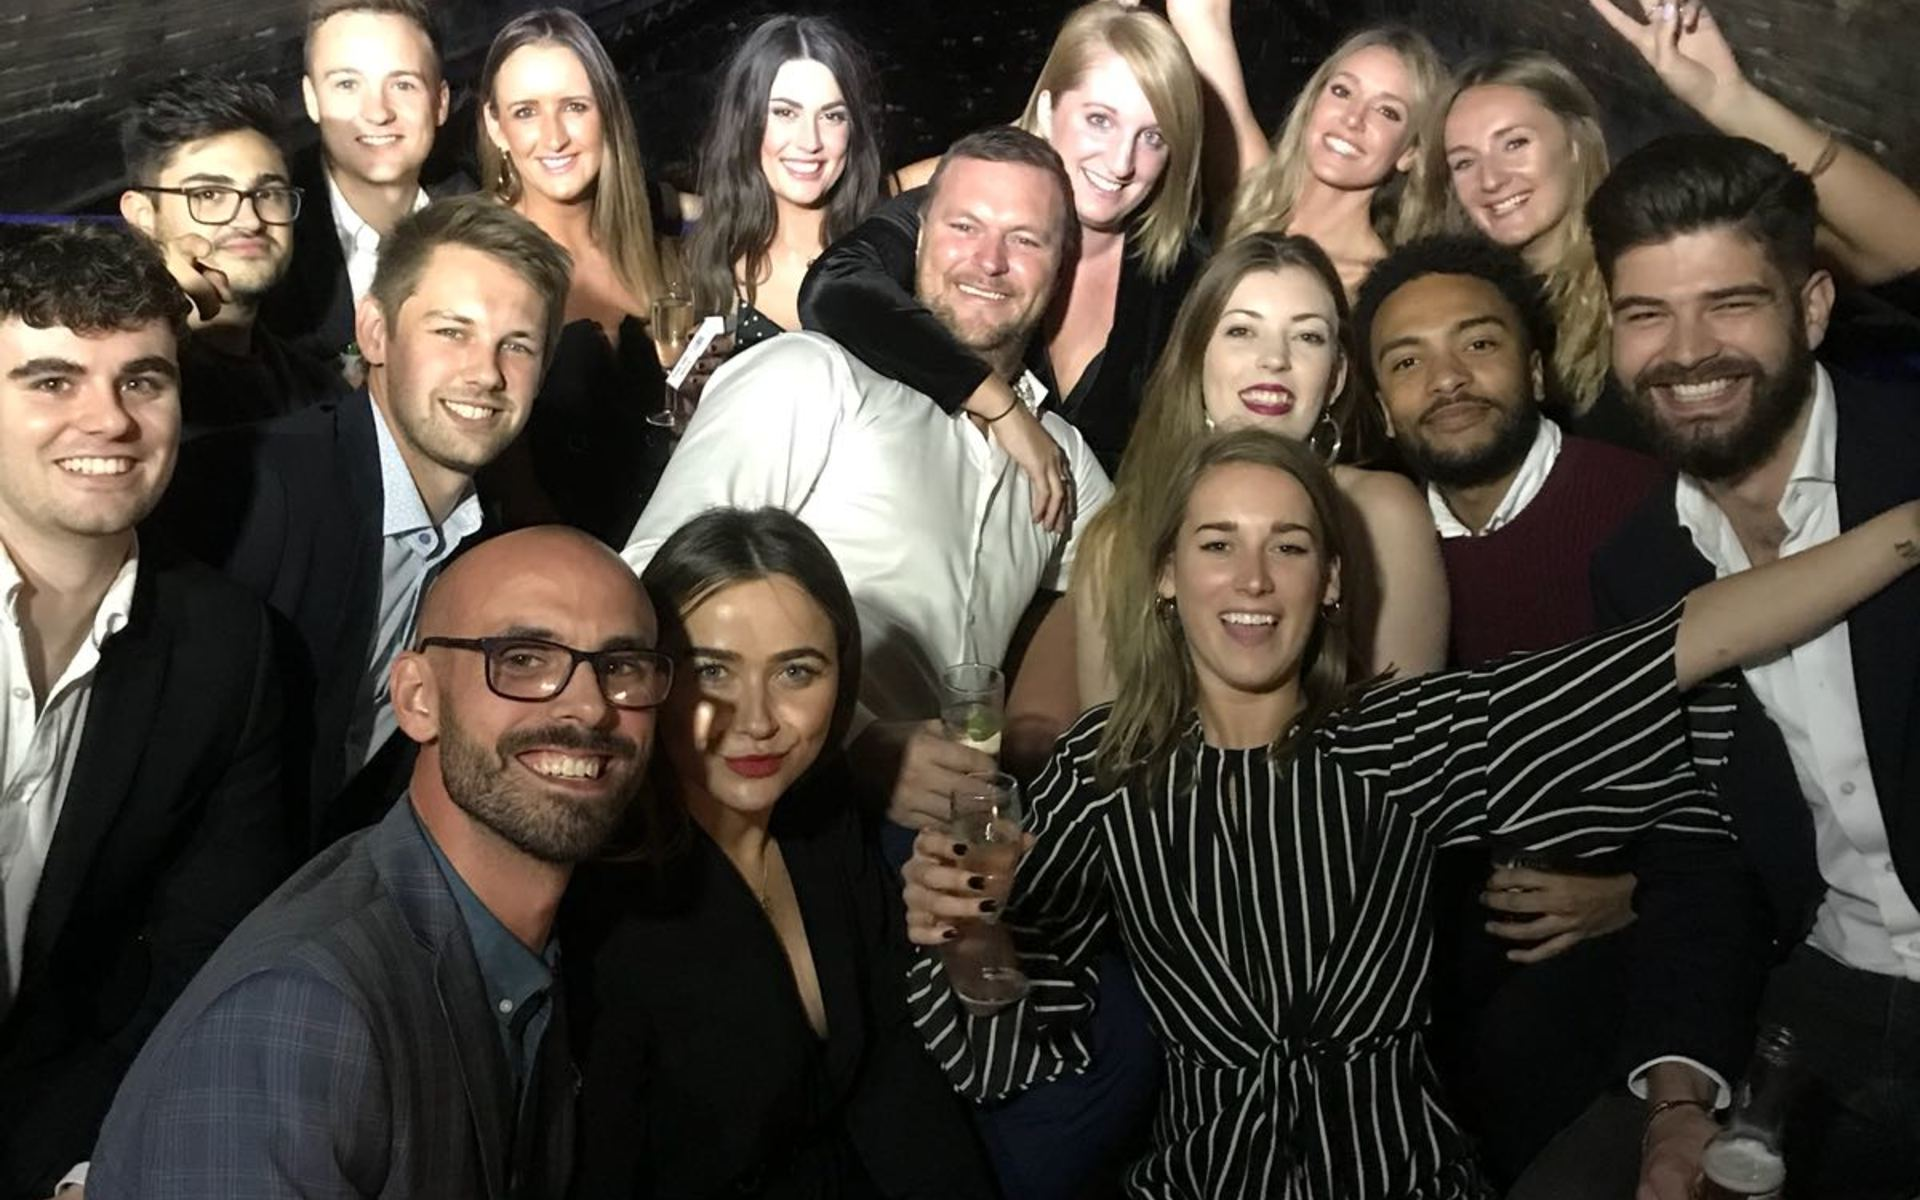 A group of men and women at a party smiling for the camera